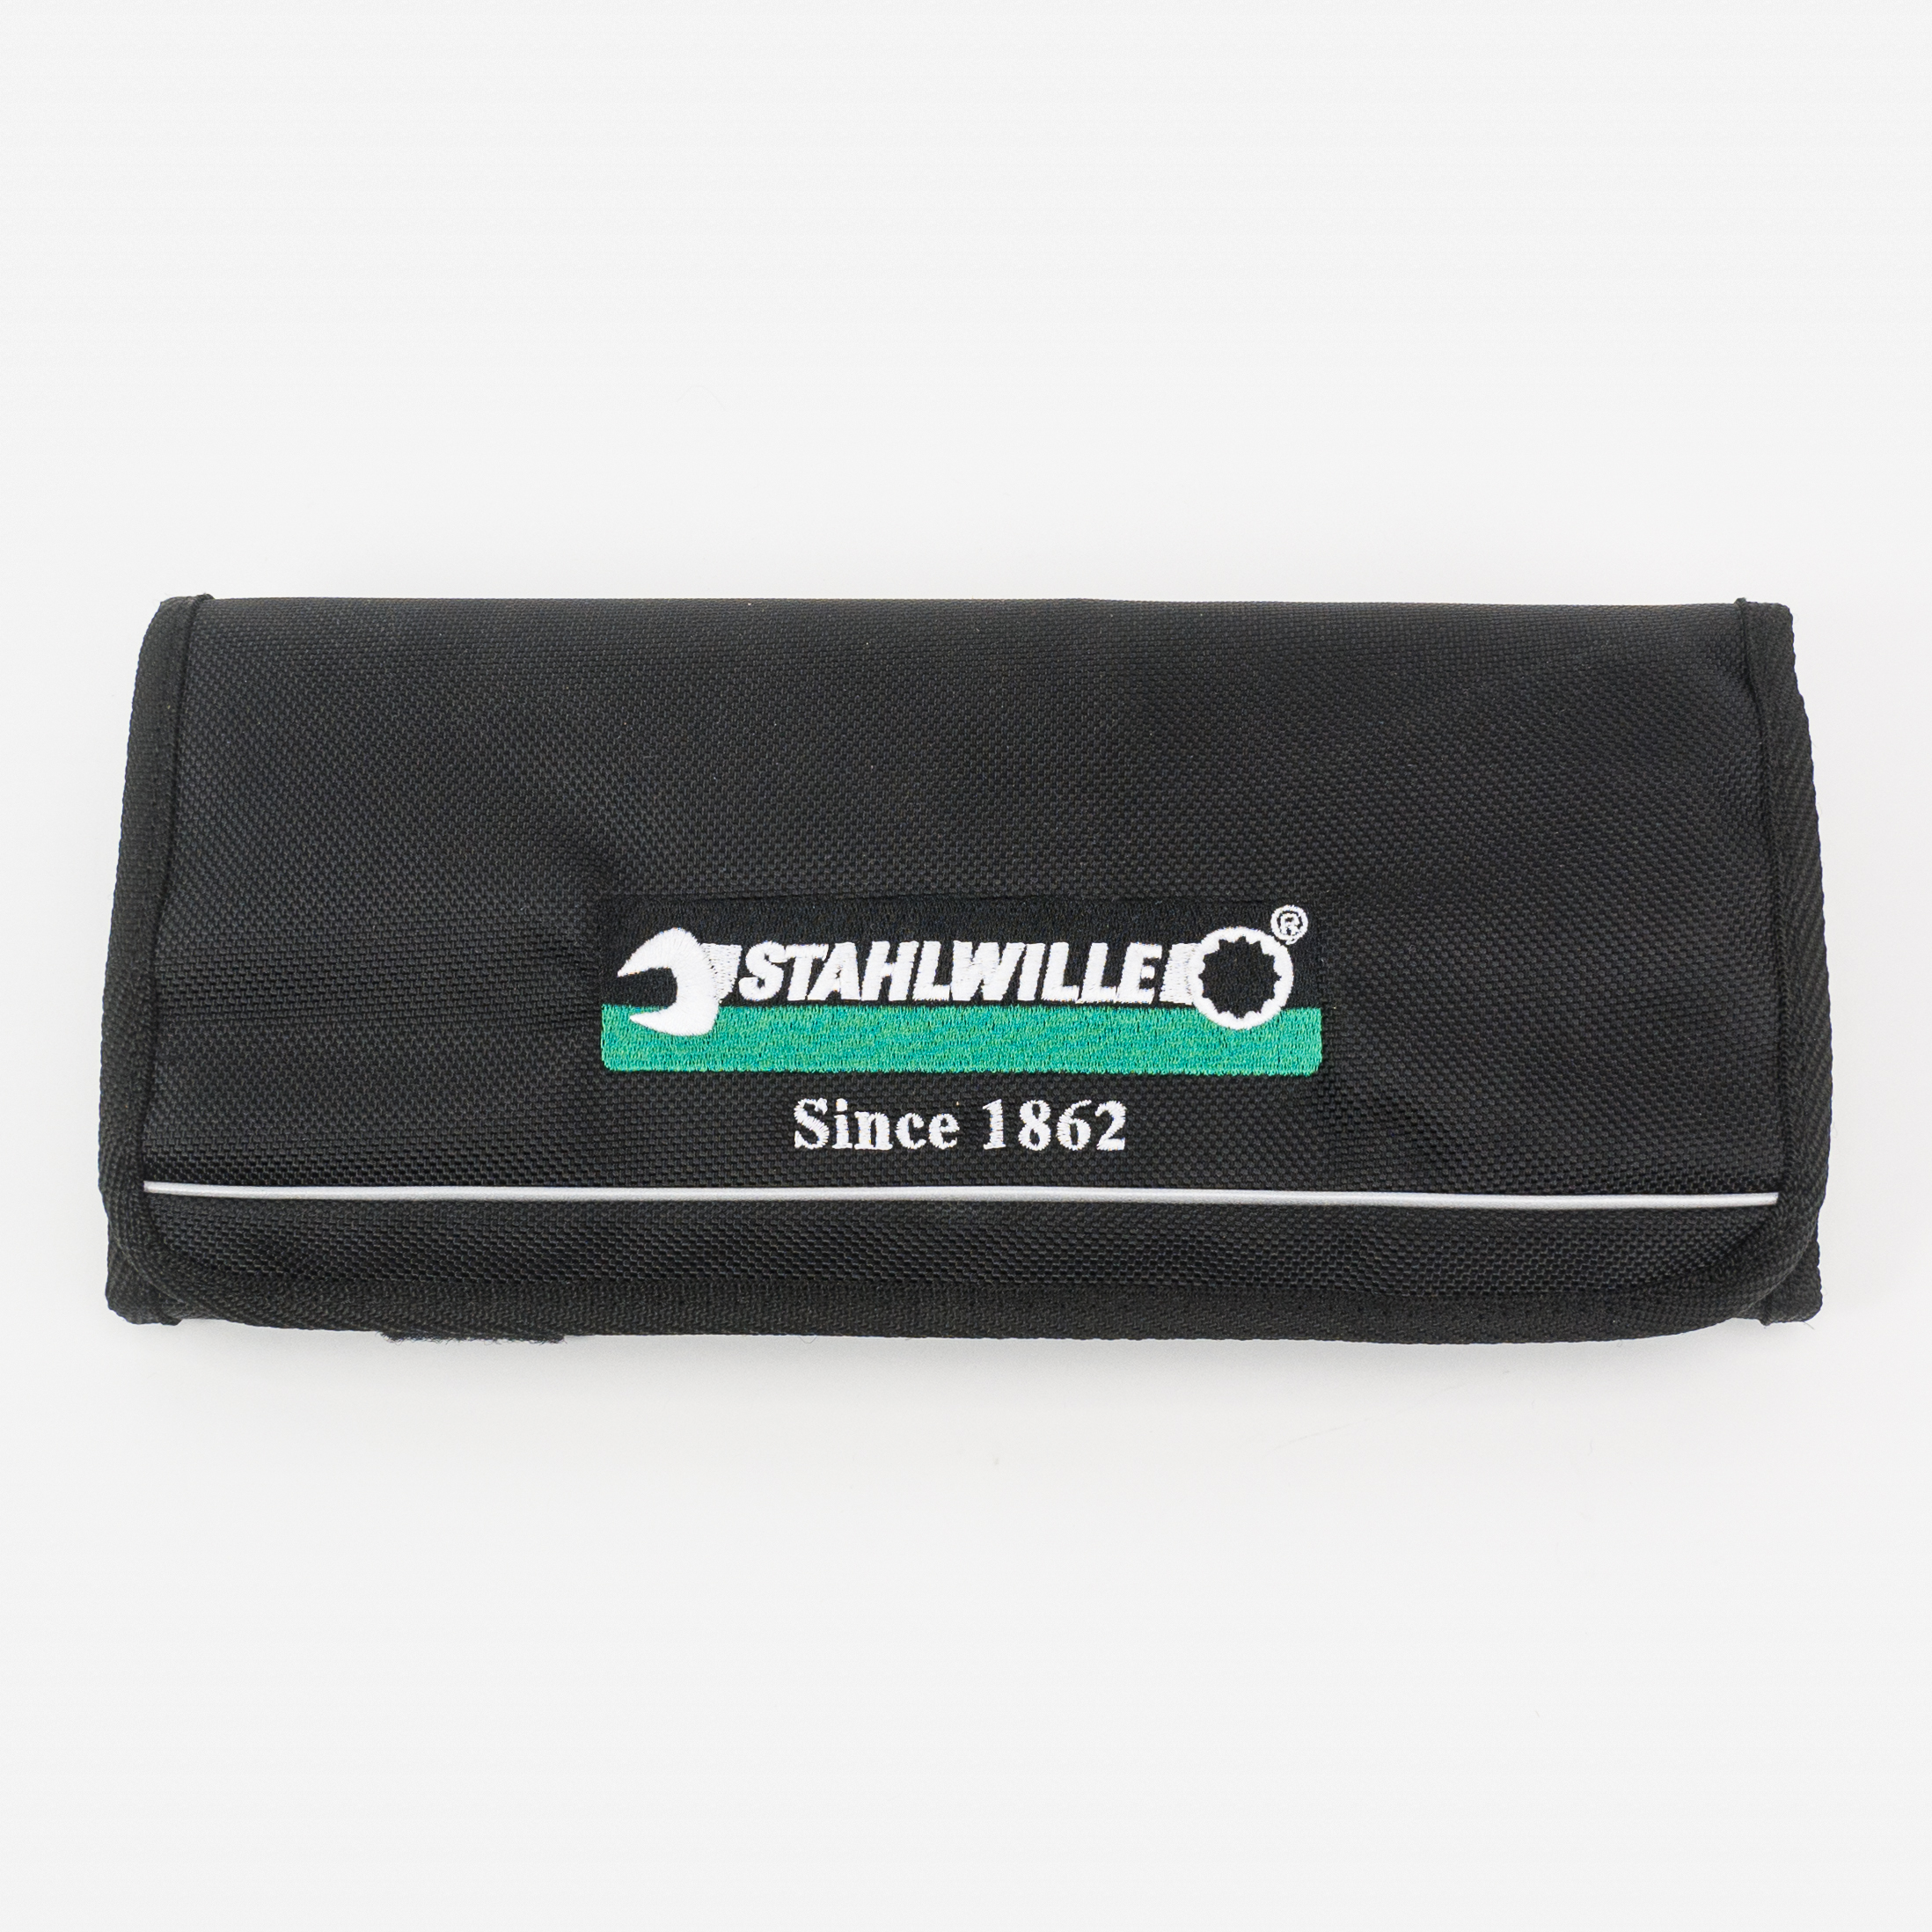 Stahlwille 13/12 Combination Spanner Set - KC Tool